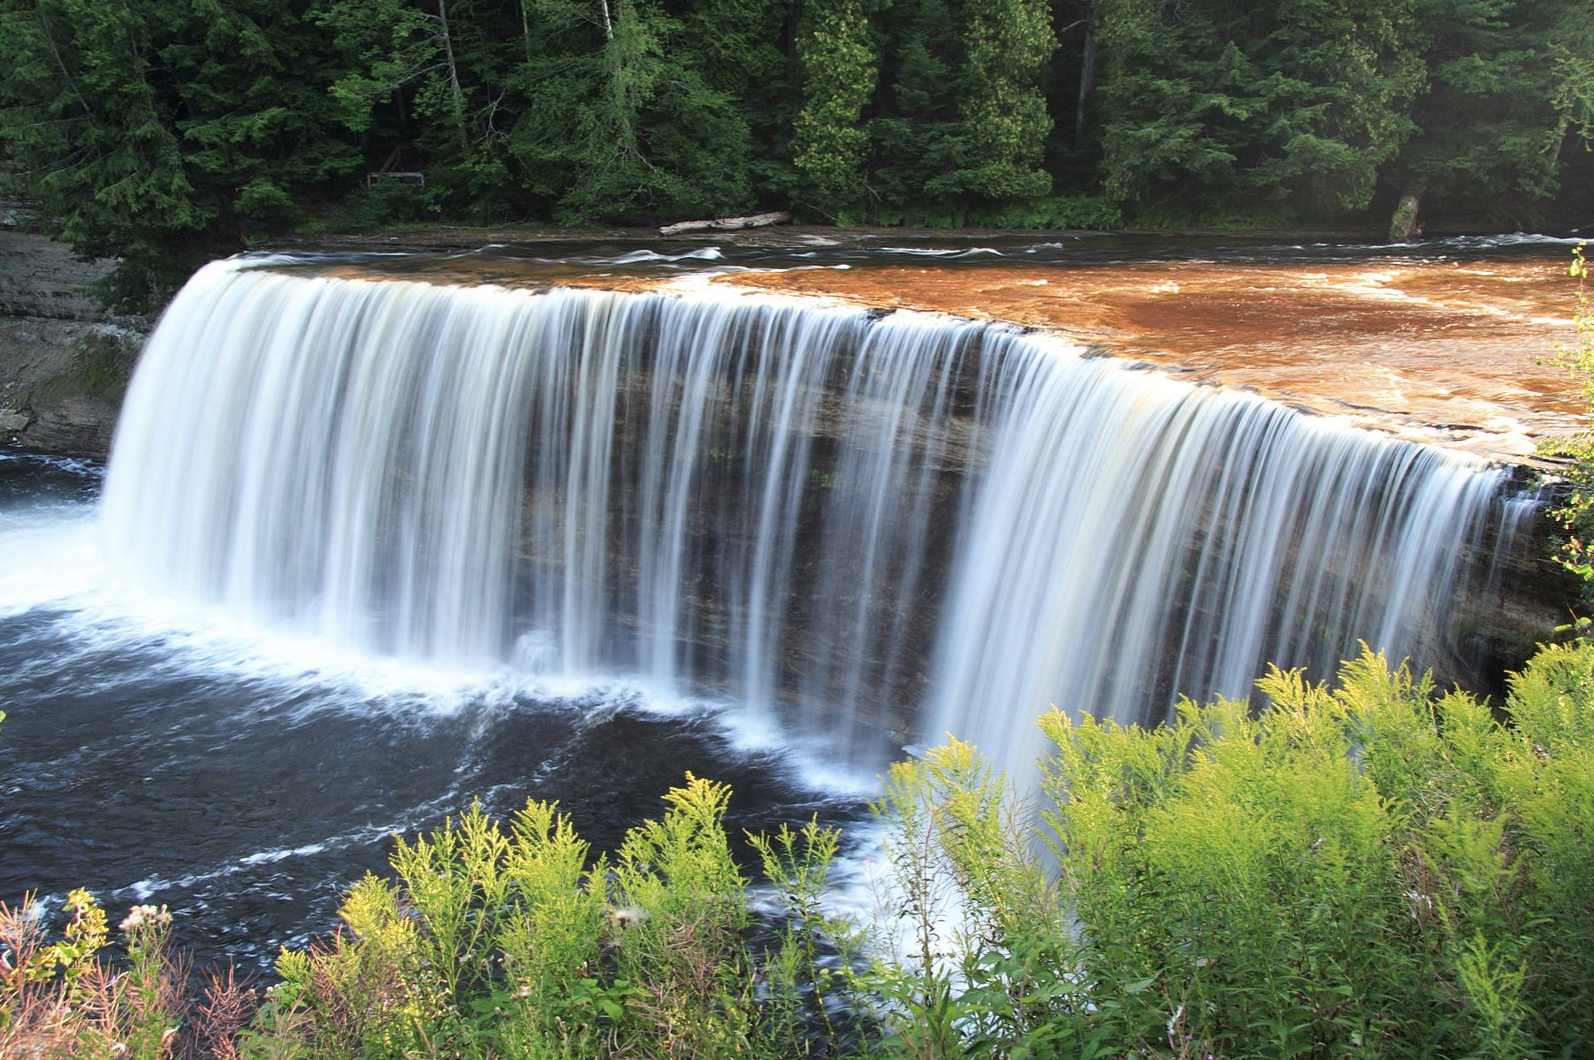 Slide 23 of 53: Located in Northern Michigan, Tahquamenon Falls State Park sits close to the border of Canada. Found along the Tahquamenon River, this park is known and named for the powerful waterfalls found in the area, which provide ample opportunity for photography.Fishing, canoeing, hiking and picnicking are also popular activities for visitors to Tahquamenon Falls. You can take your time exploring the park by renting out an available cabin or lodge or camping in the designated campgrounds.